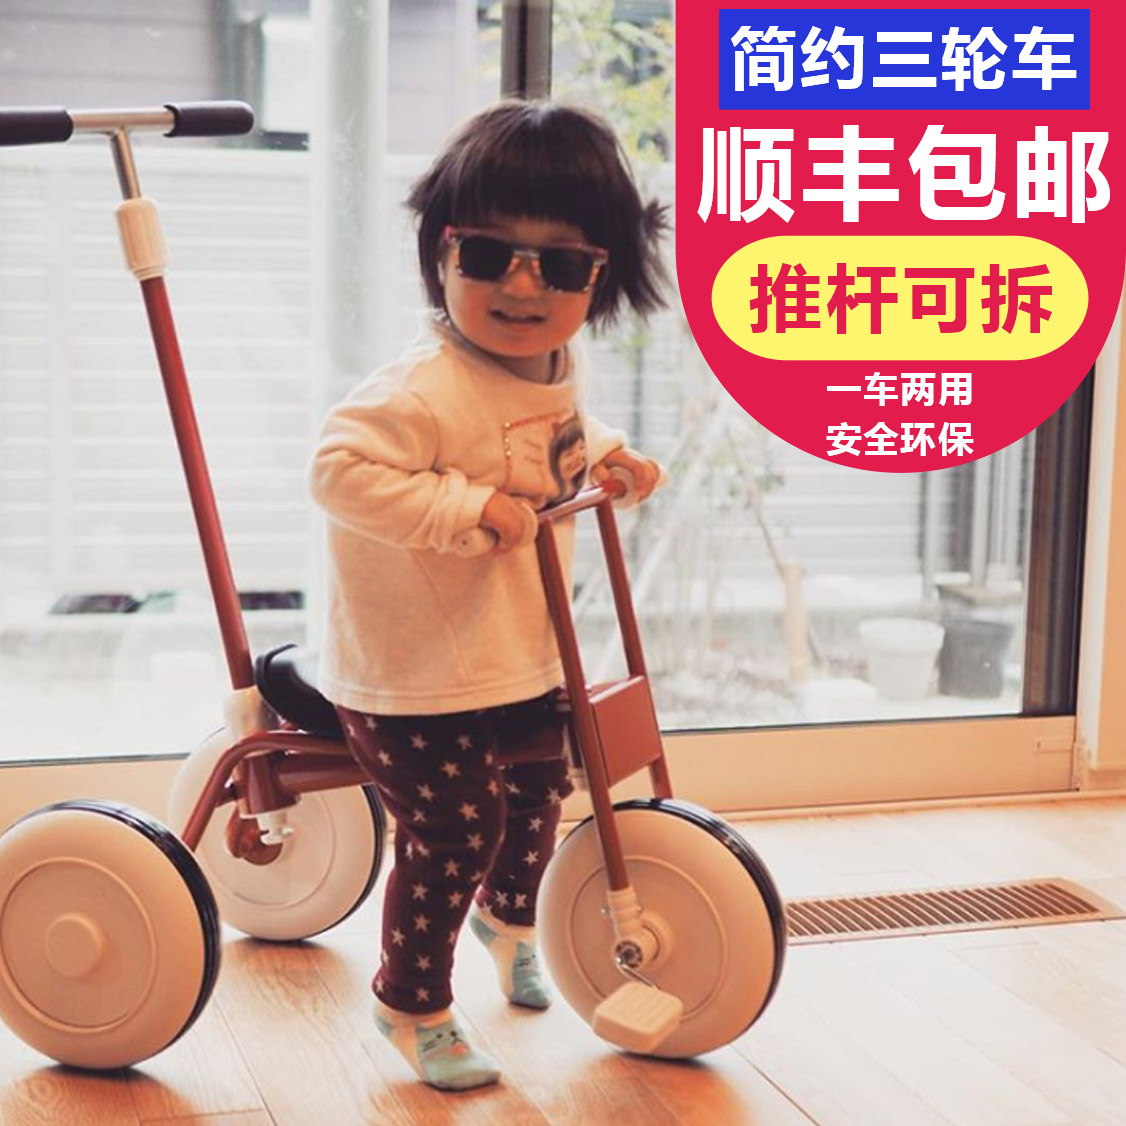 High quality children tricycle bicycles 1-3 years old children portable trolley bicycle baby stroller цена